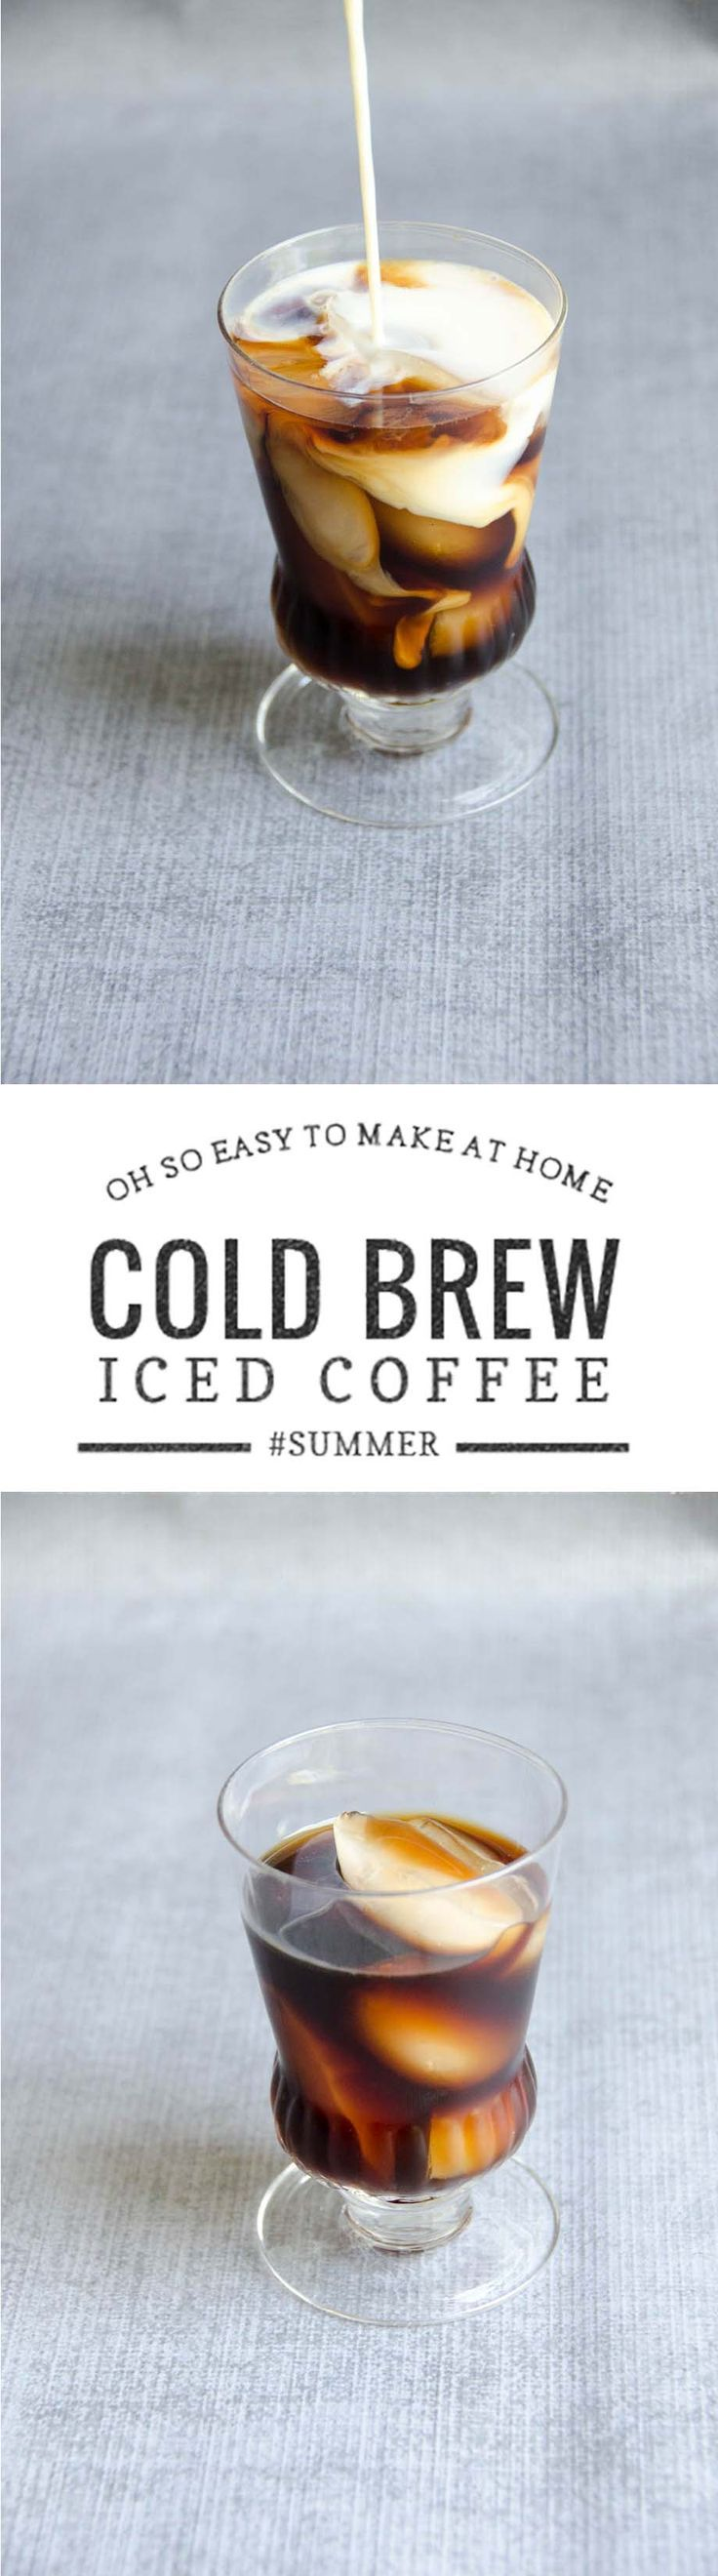 6061aea317fcf6ffc064988949028bbd How To Make Cold Coffee At Home Without Coffee Maker